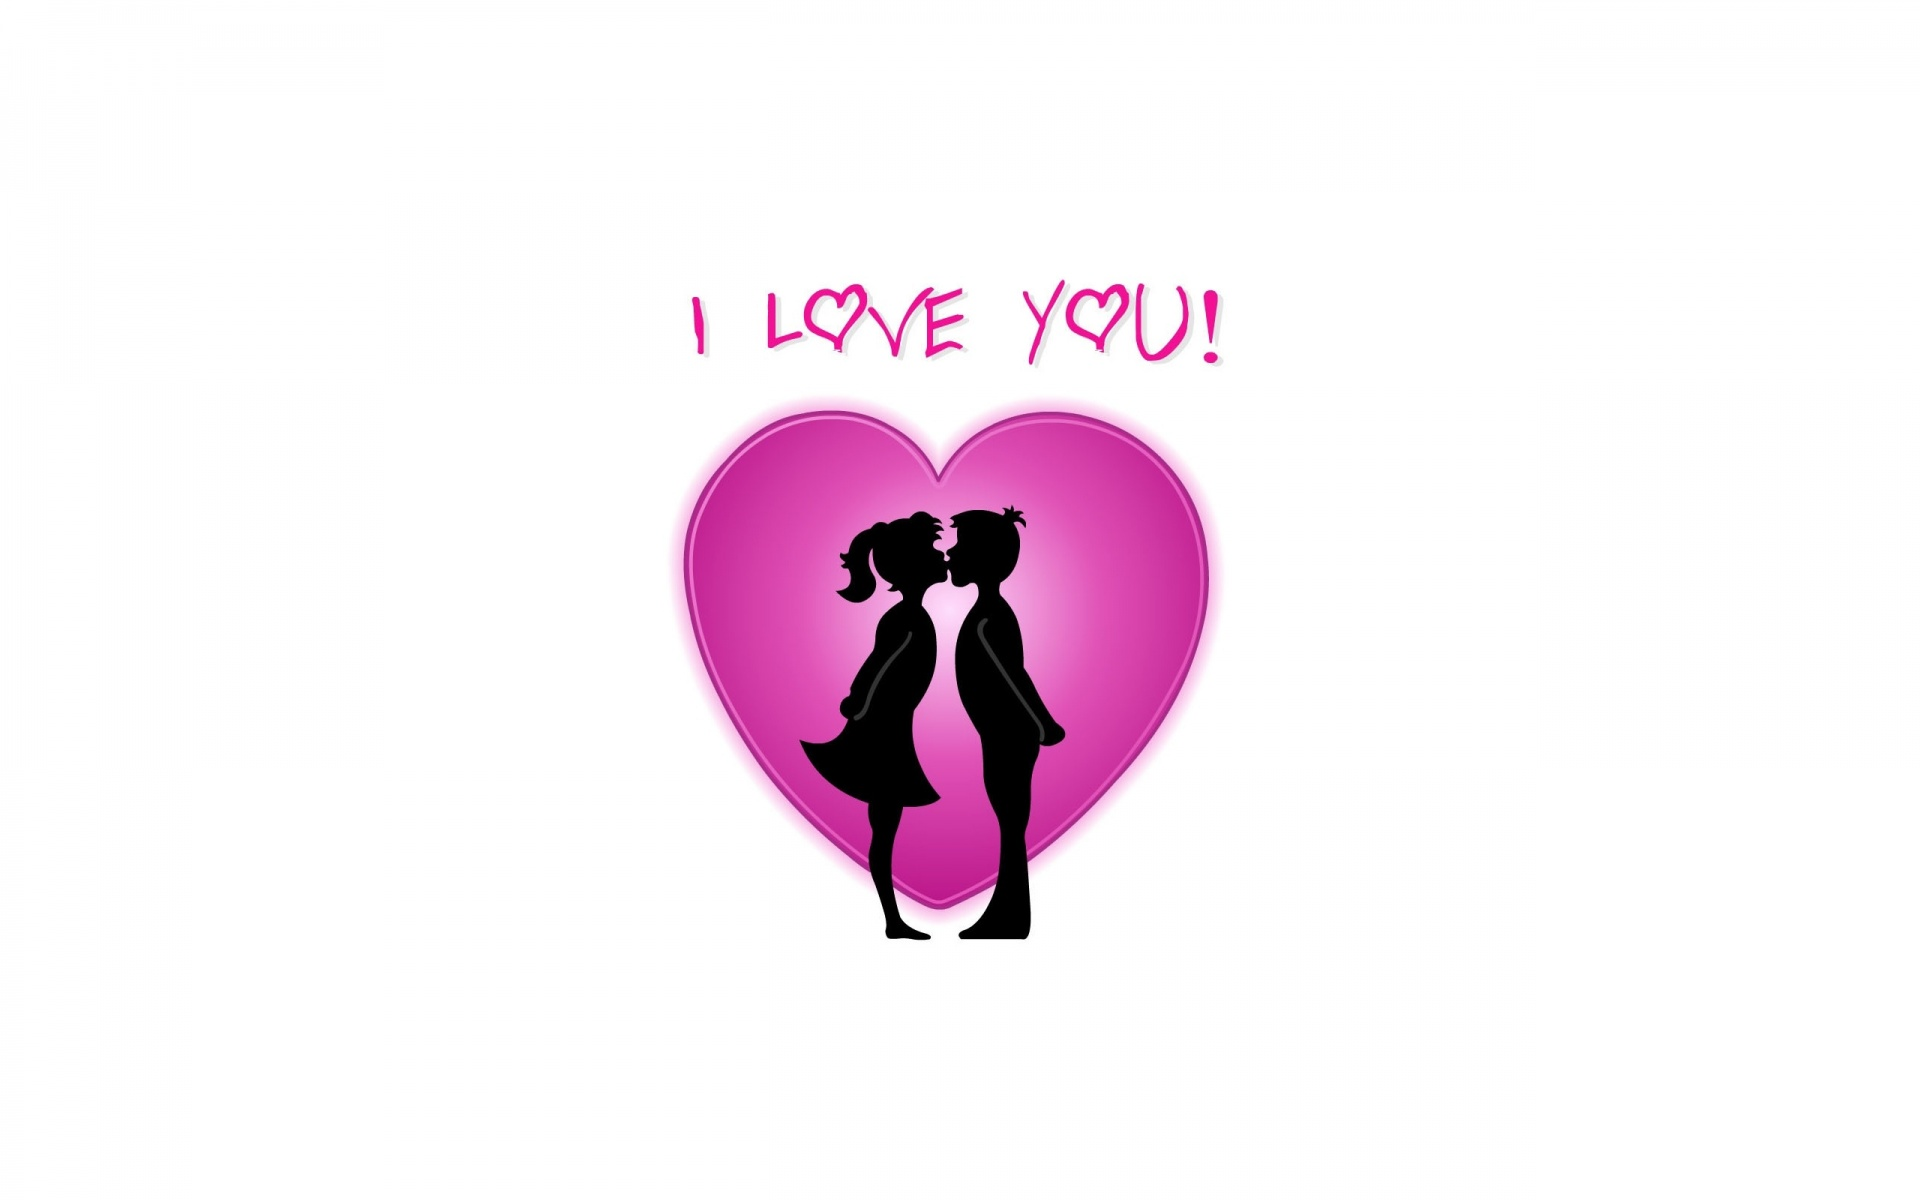 I Love You Wallpapers HD A19 - HD Desktop Wallpapers 4k HD